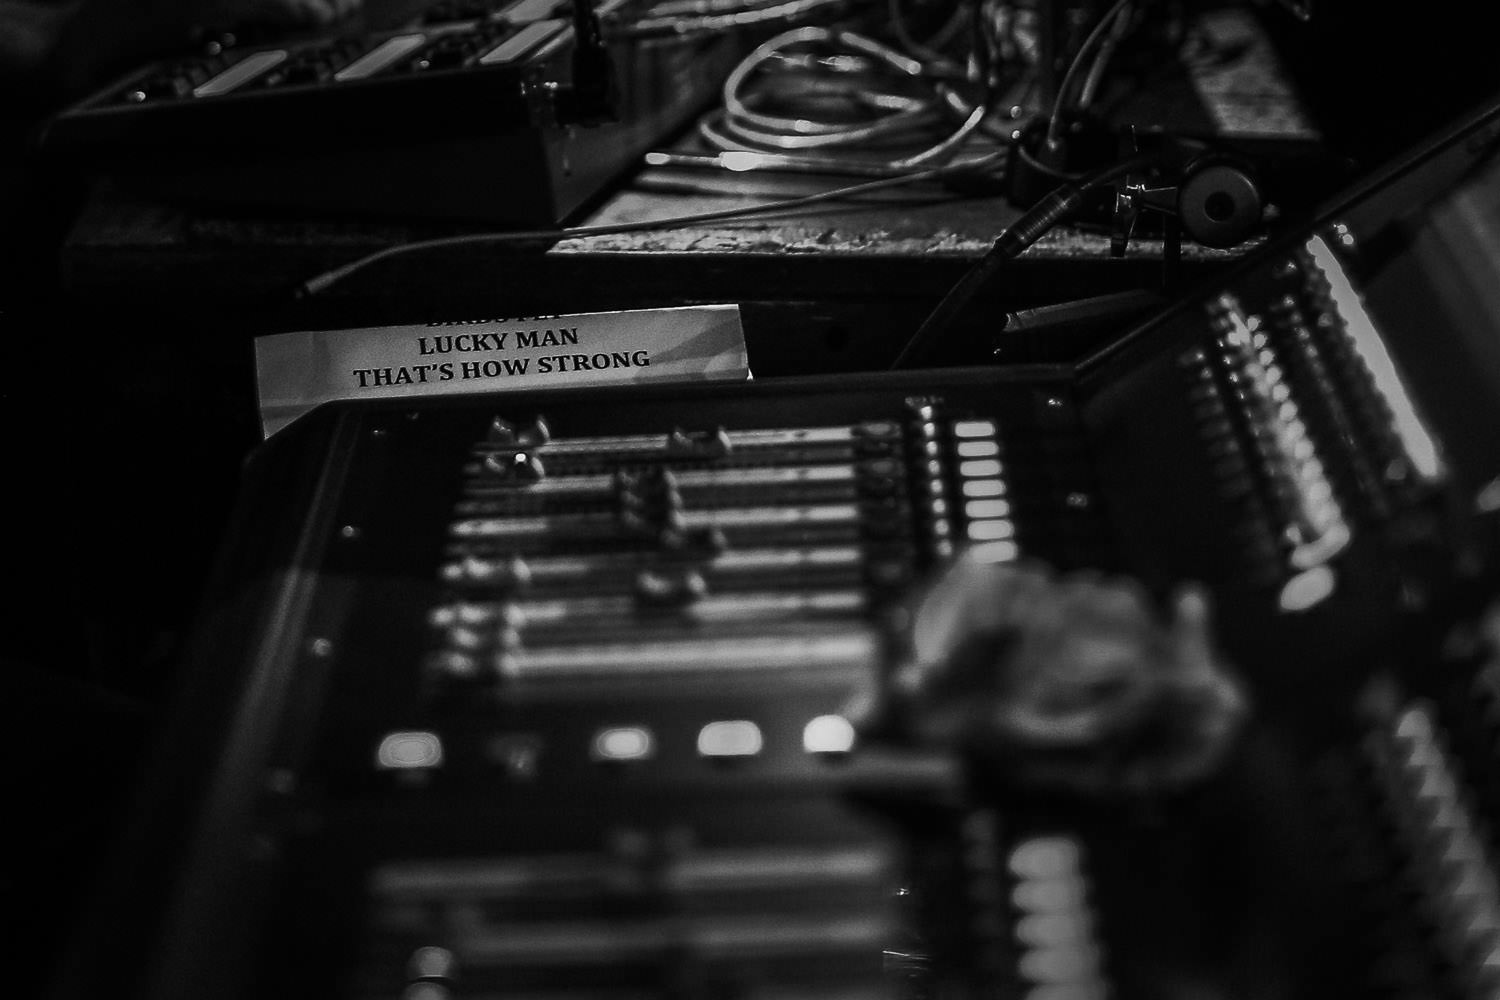 Lighting and sound mixing board with Lucky Man Natural Rebel set list from Richard Ashcroft concert in Manchester